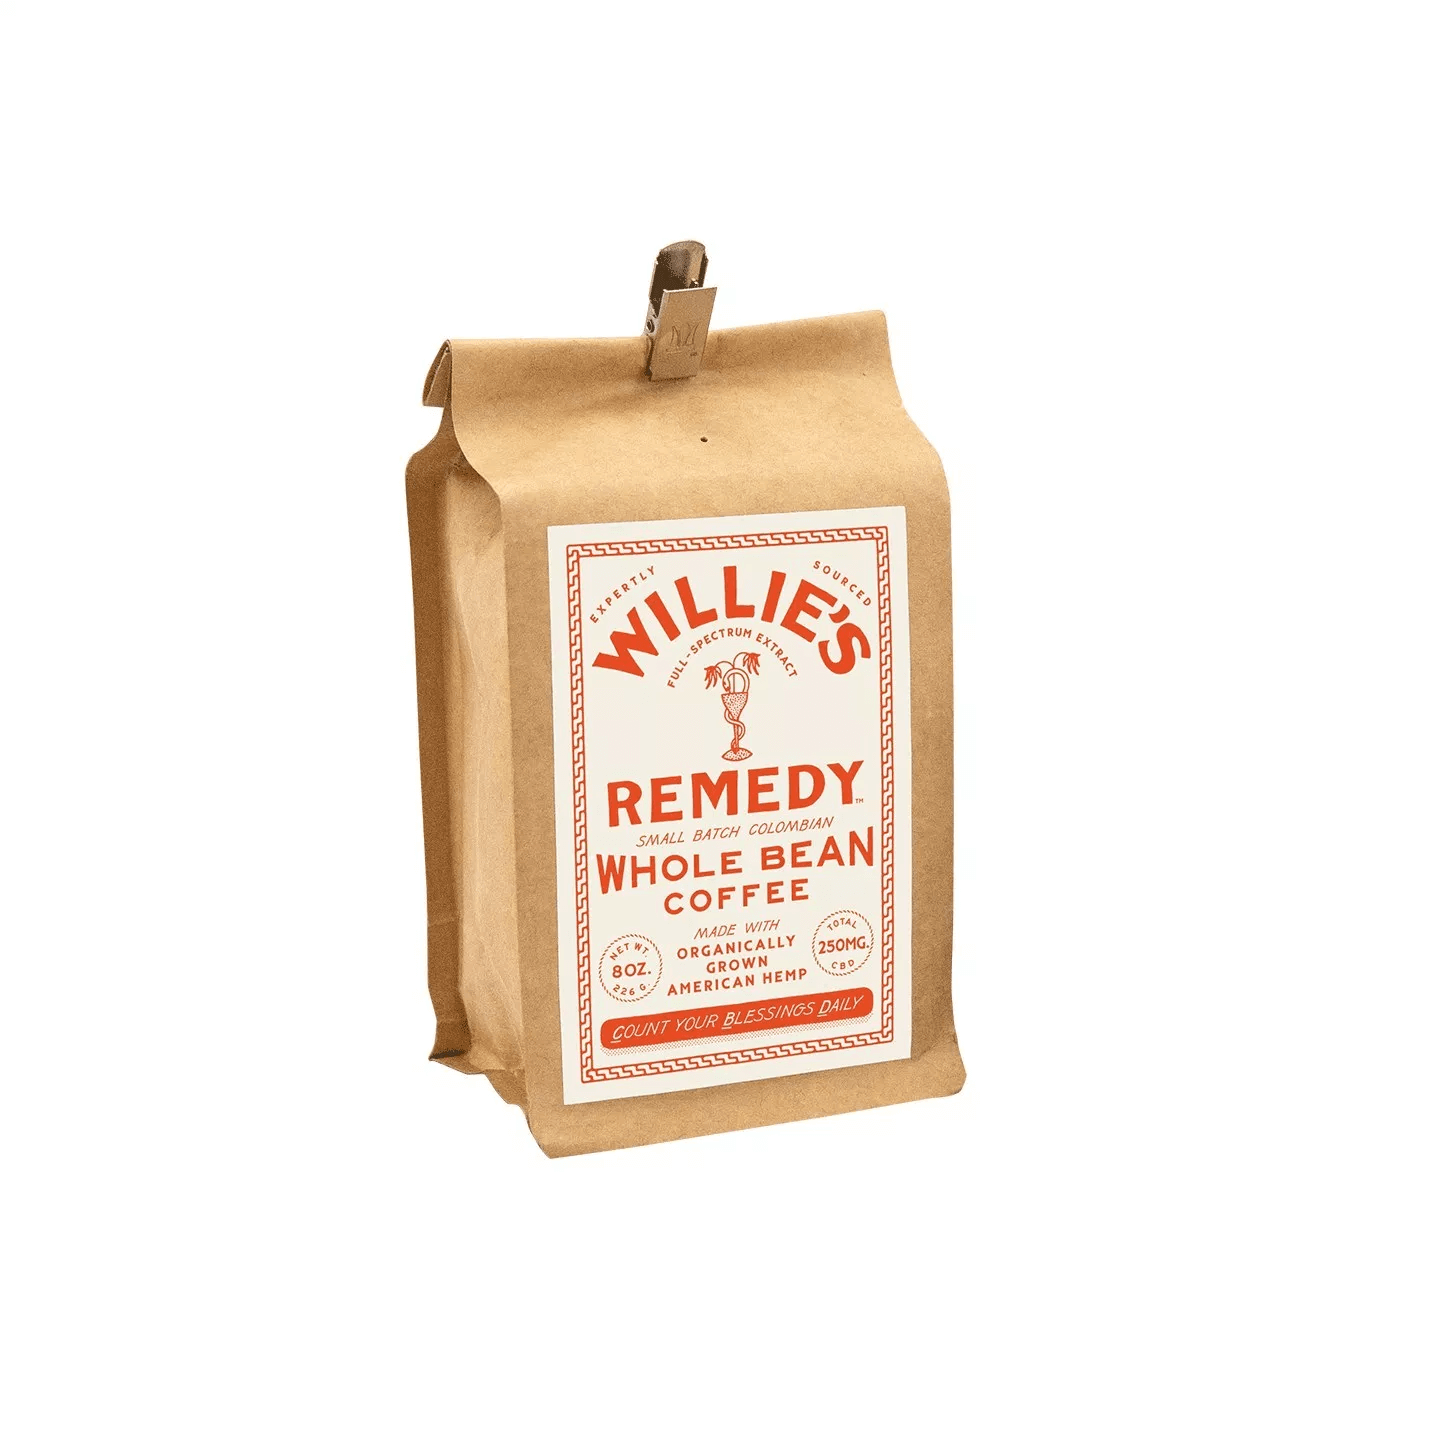 Willie's Remedy Whole Bean Coffee